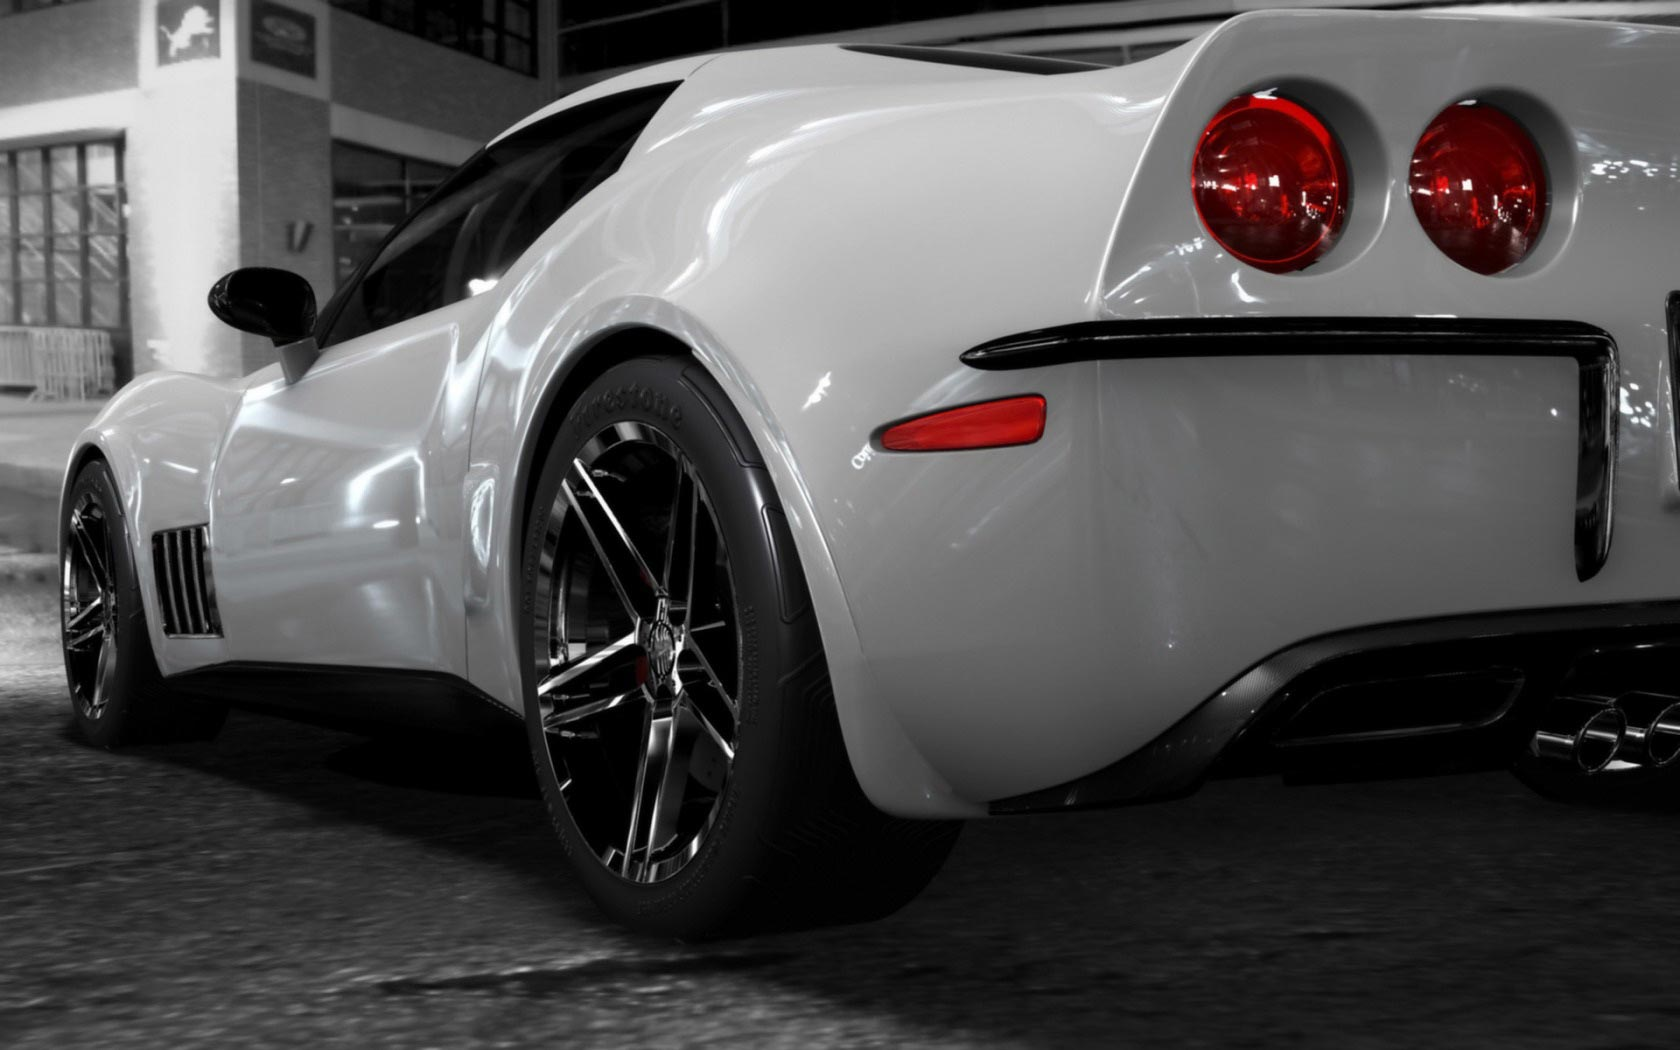 cool 3d car backgrounds 9875 hd wallpapers in 3d imagescicom - Cool Cars Wallpapers 3d